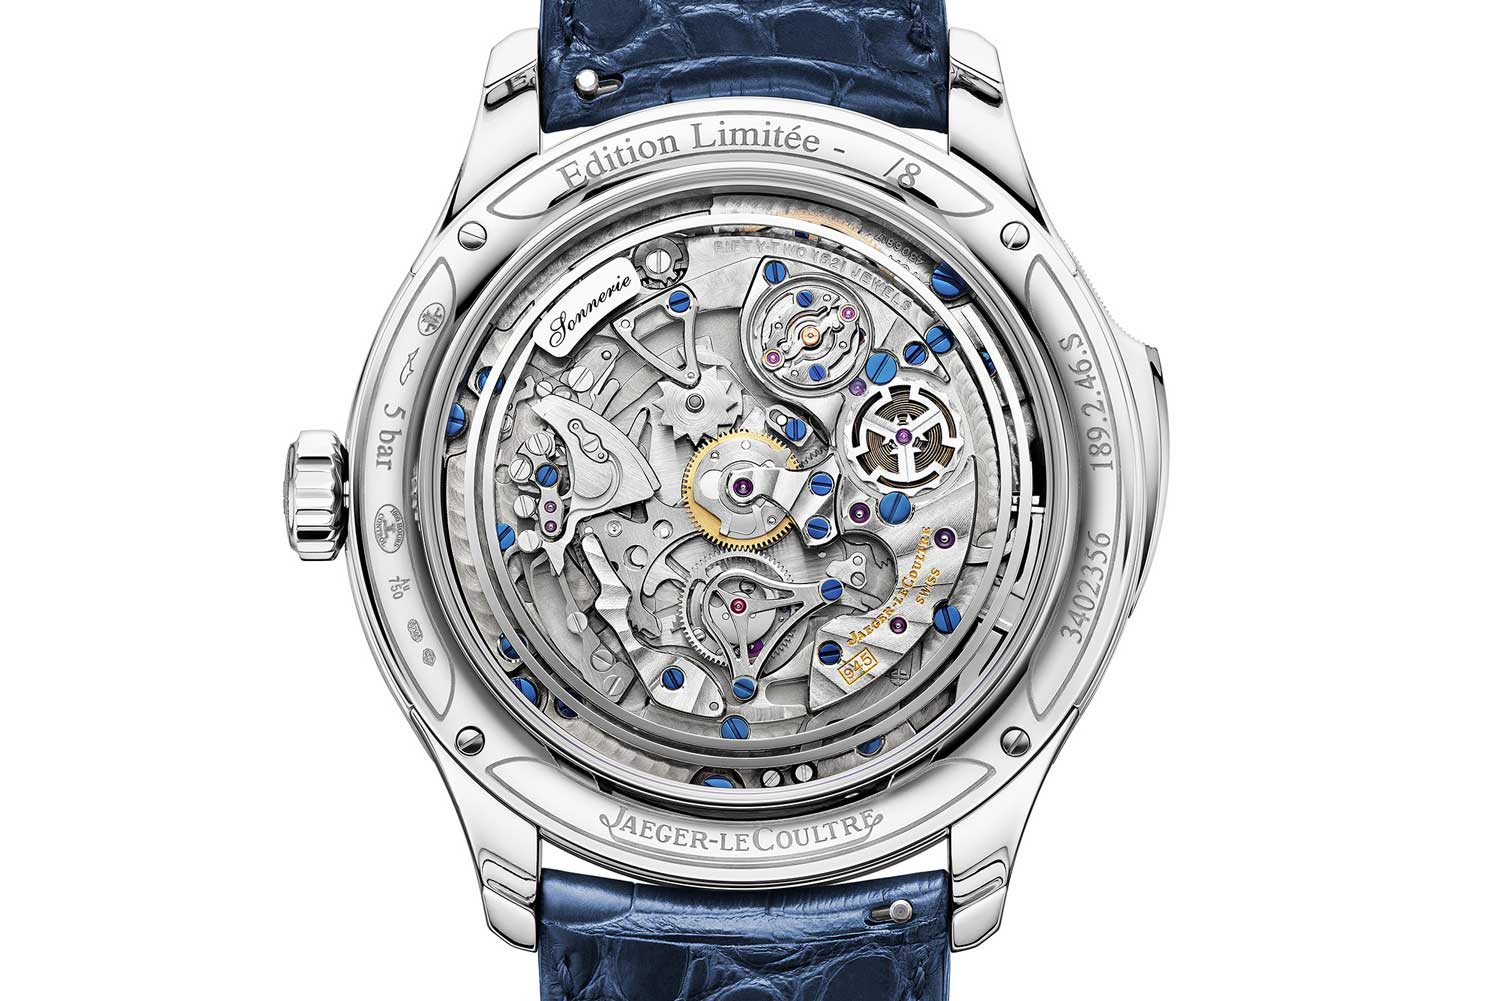 On the case back, the minute repeater's operations can be fully admired